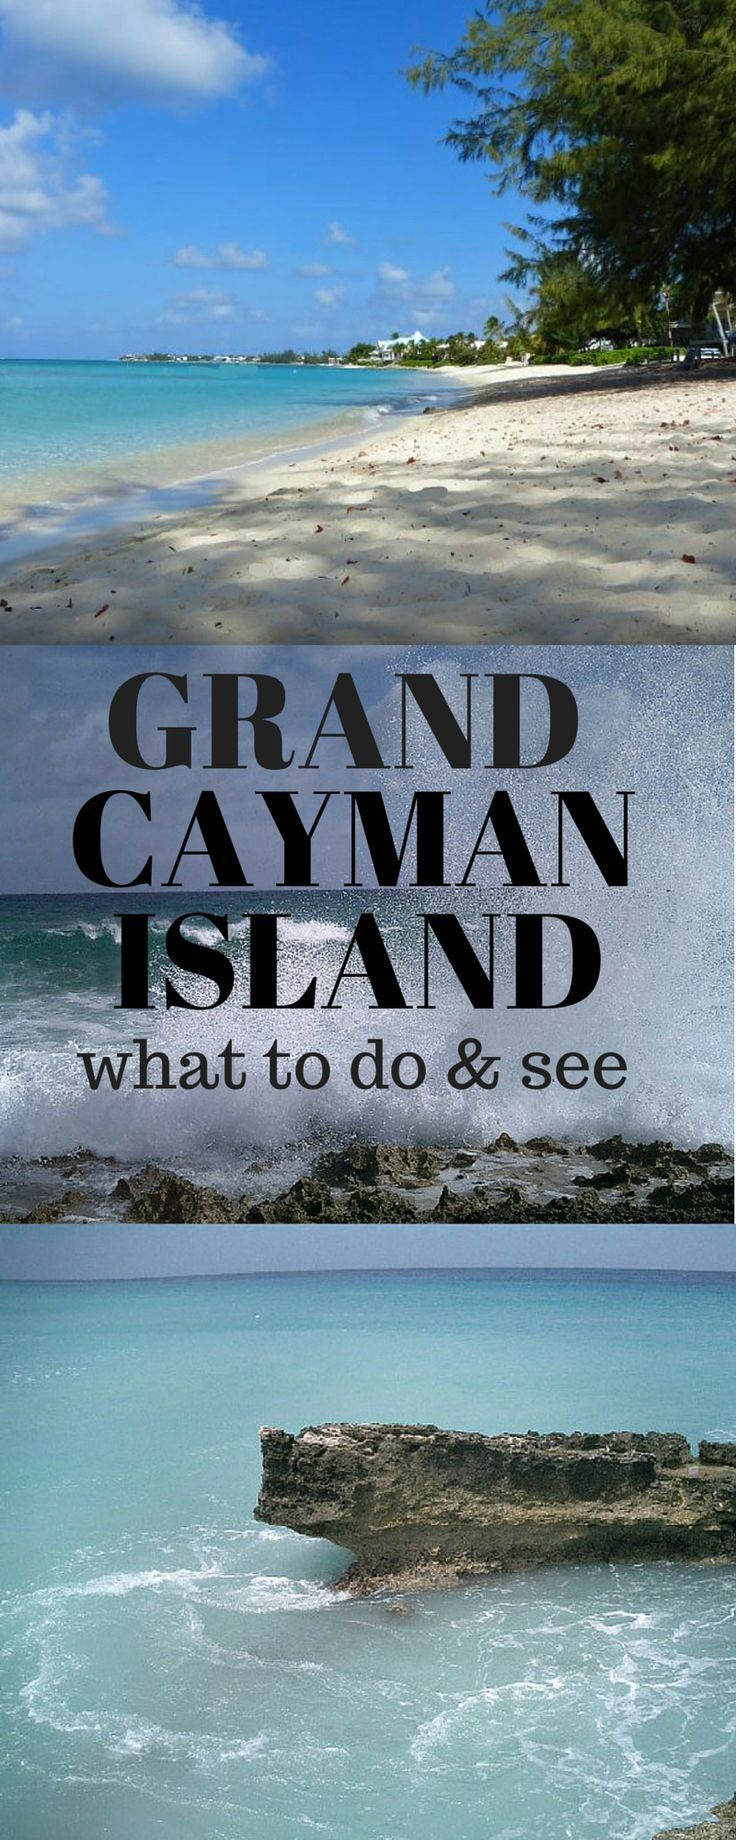 Grand Cayman Island is more than just a cruise stop in the Caribbean!